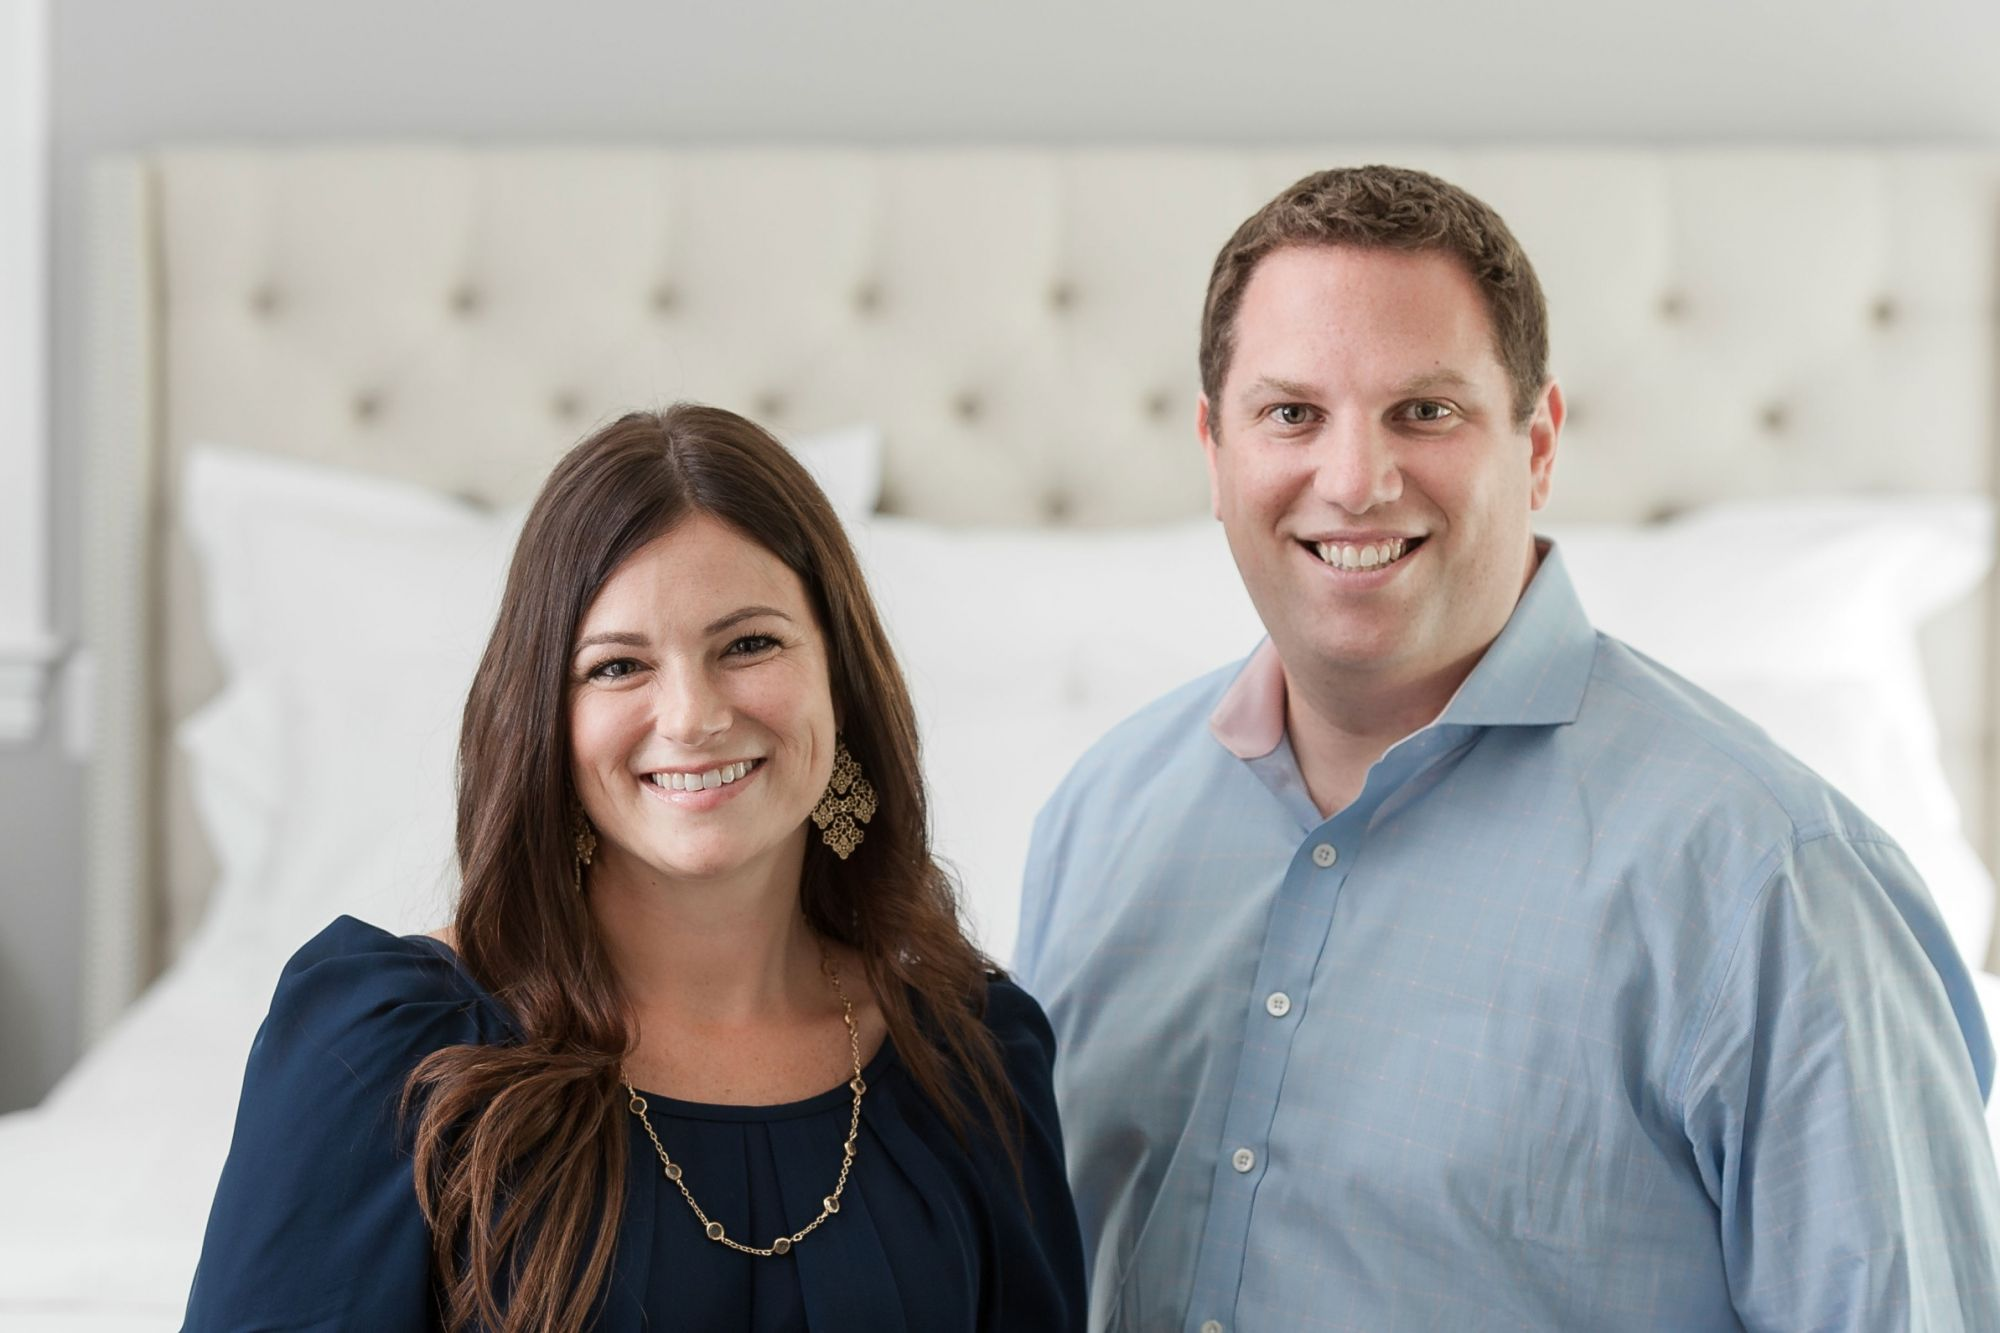 Here's Why This Bedding Company Expanded Into the Hyper-Competitive World of Online Mattresses (Podcast)